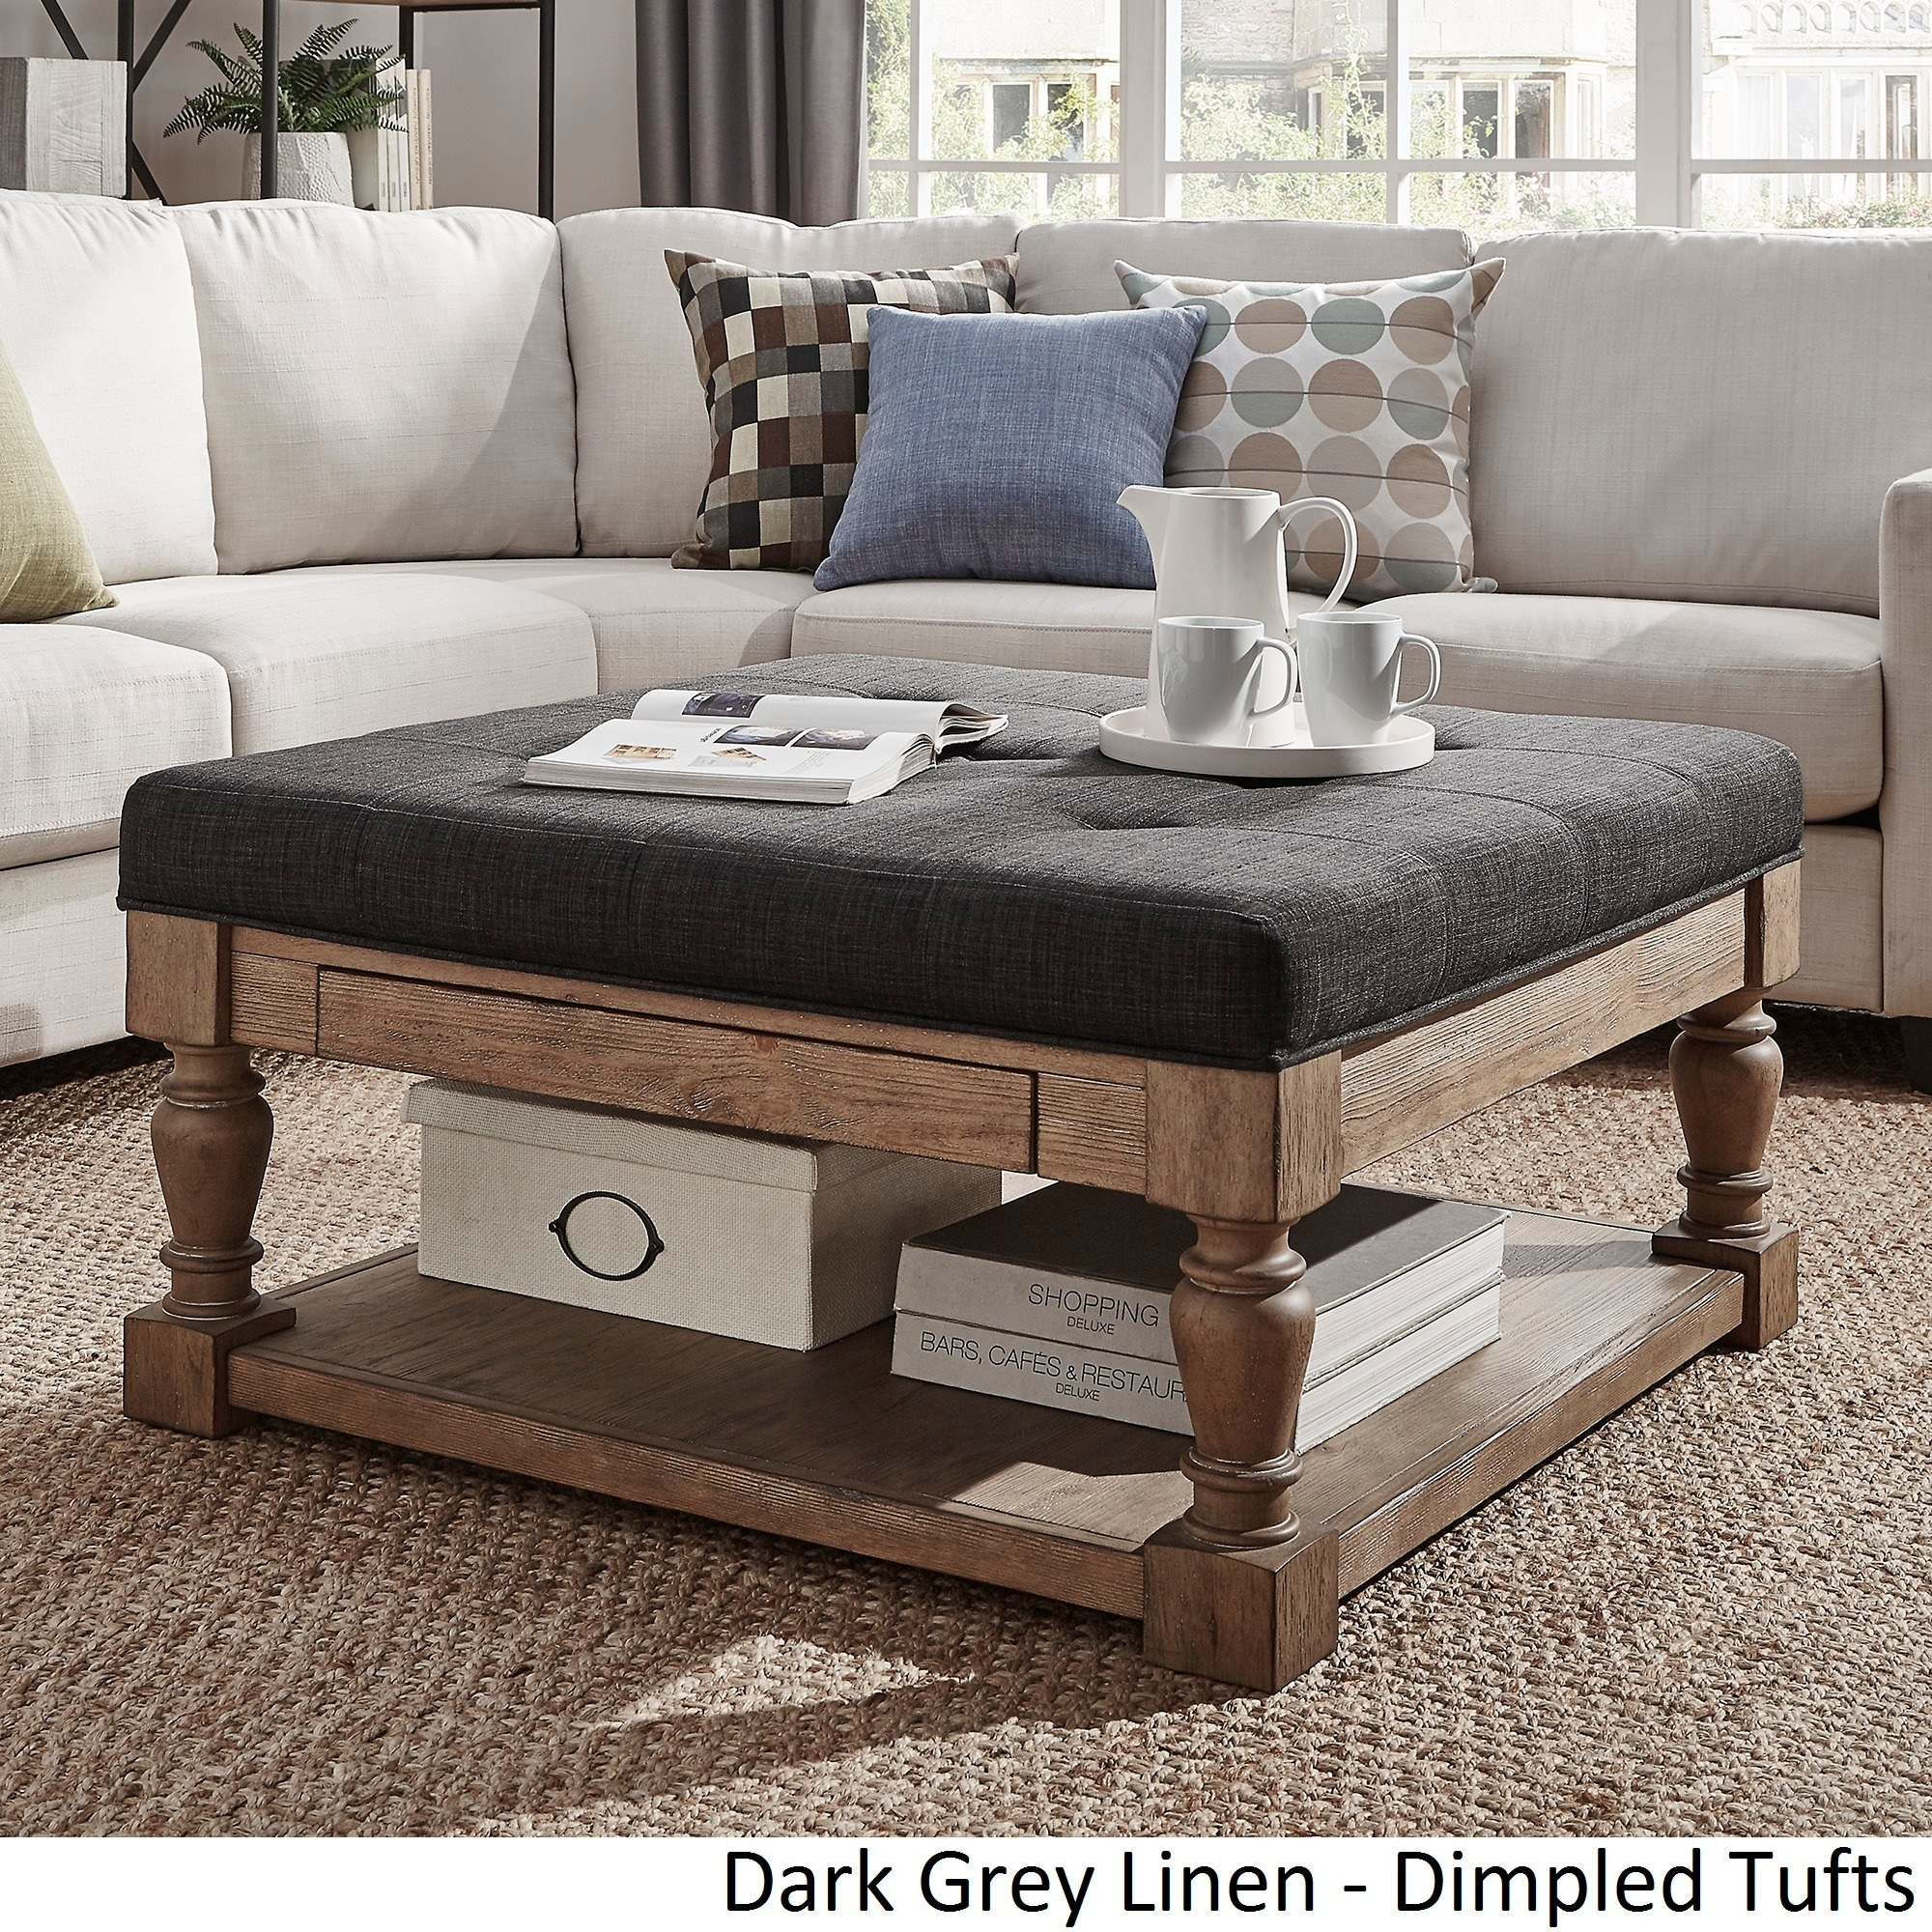 Pine Tufted Furniture